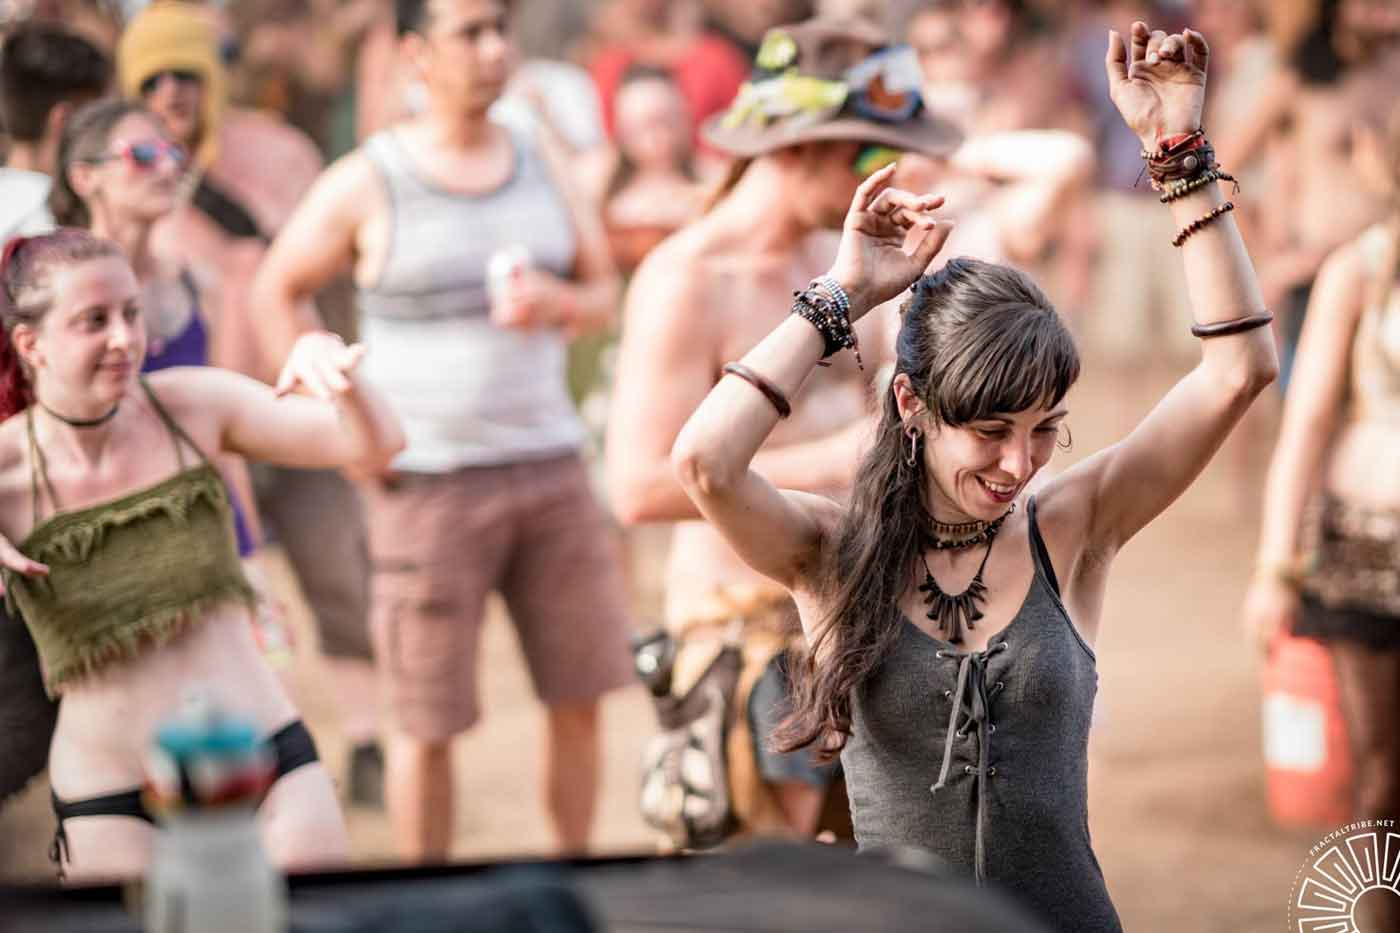 psychedelic-shirt-trance-clothing-sol-seed-of-life-eclipse-festival-2